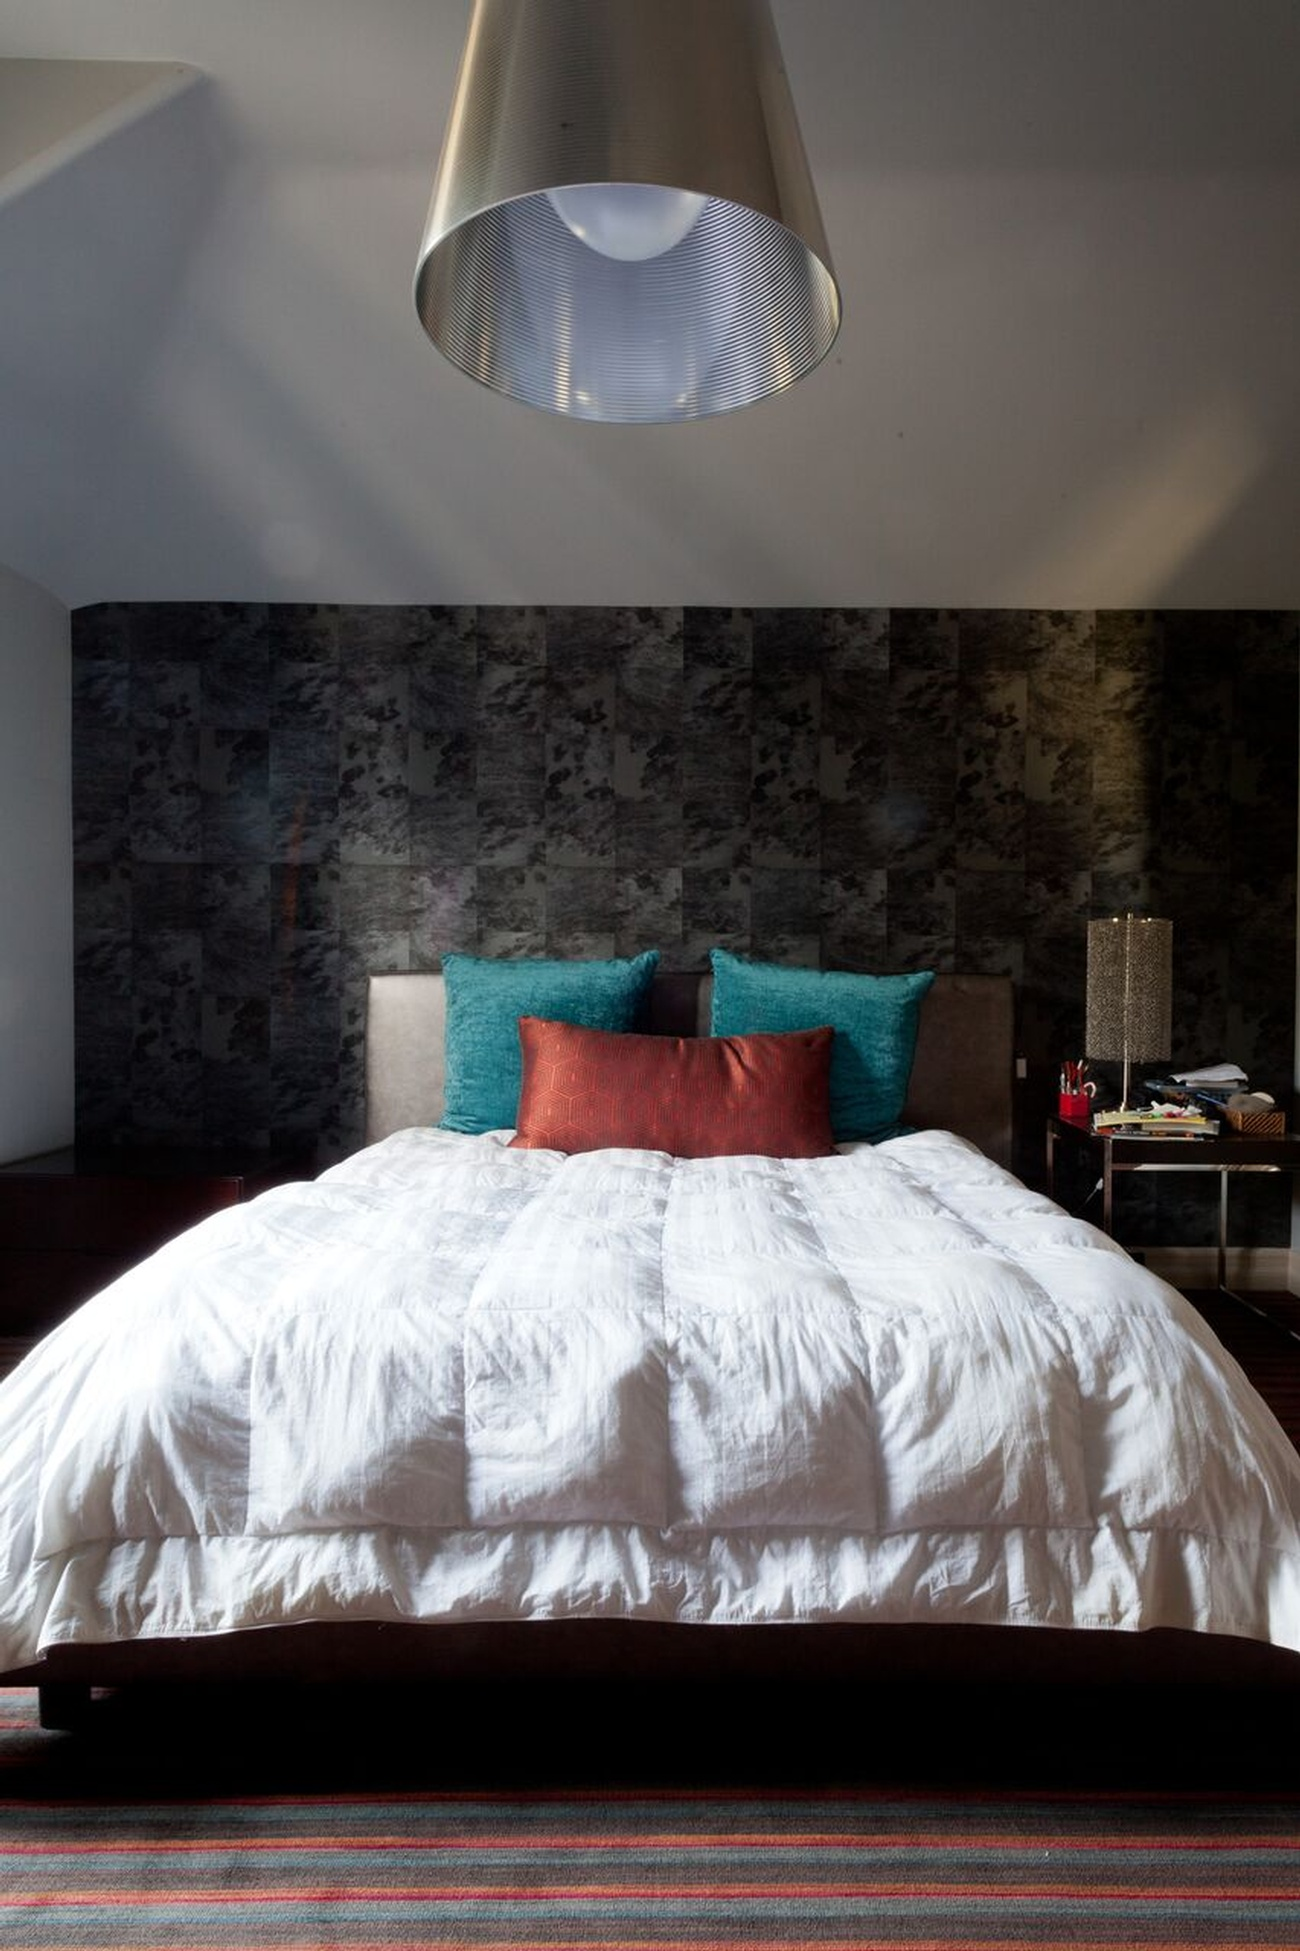 Bedroom Interior Decorating Services and Custom Bedding Malibu